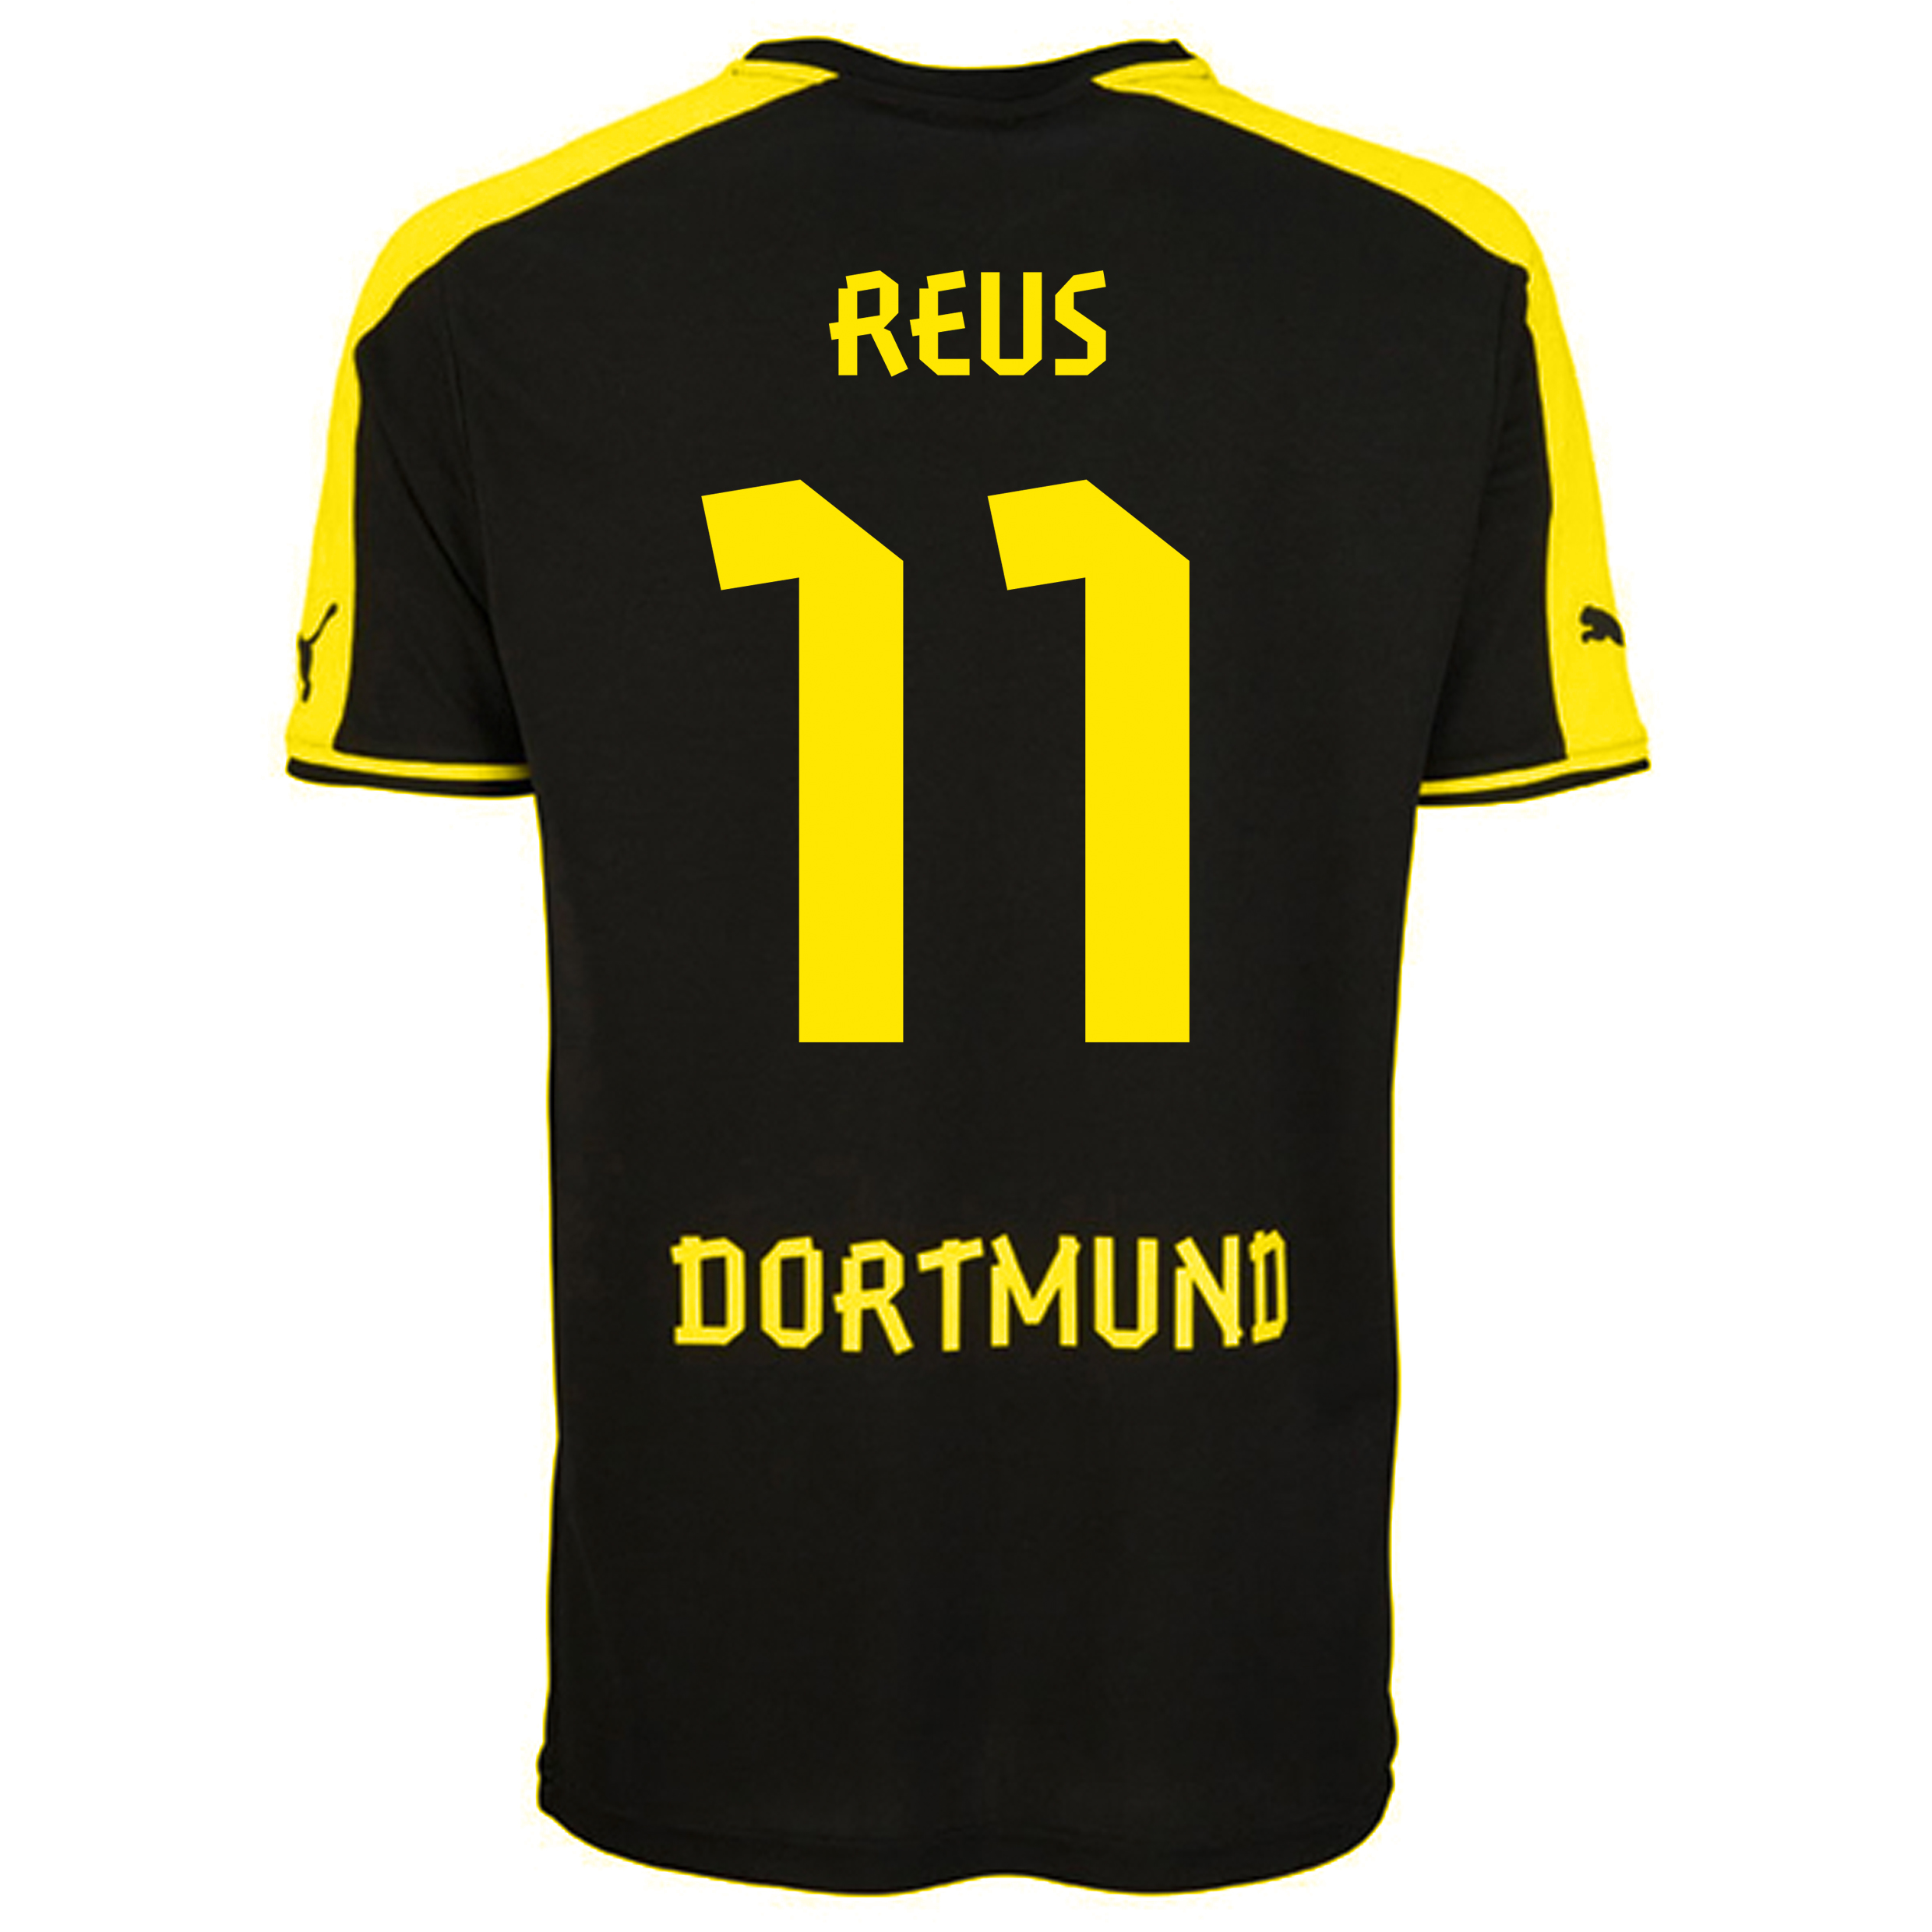 BVB Away Shirt 2013/14 with Reus 11 printing